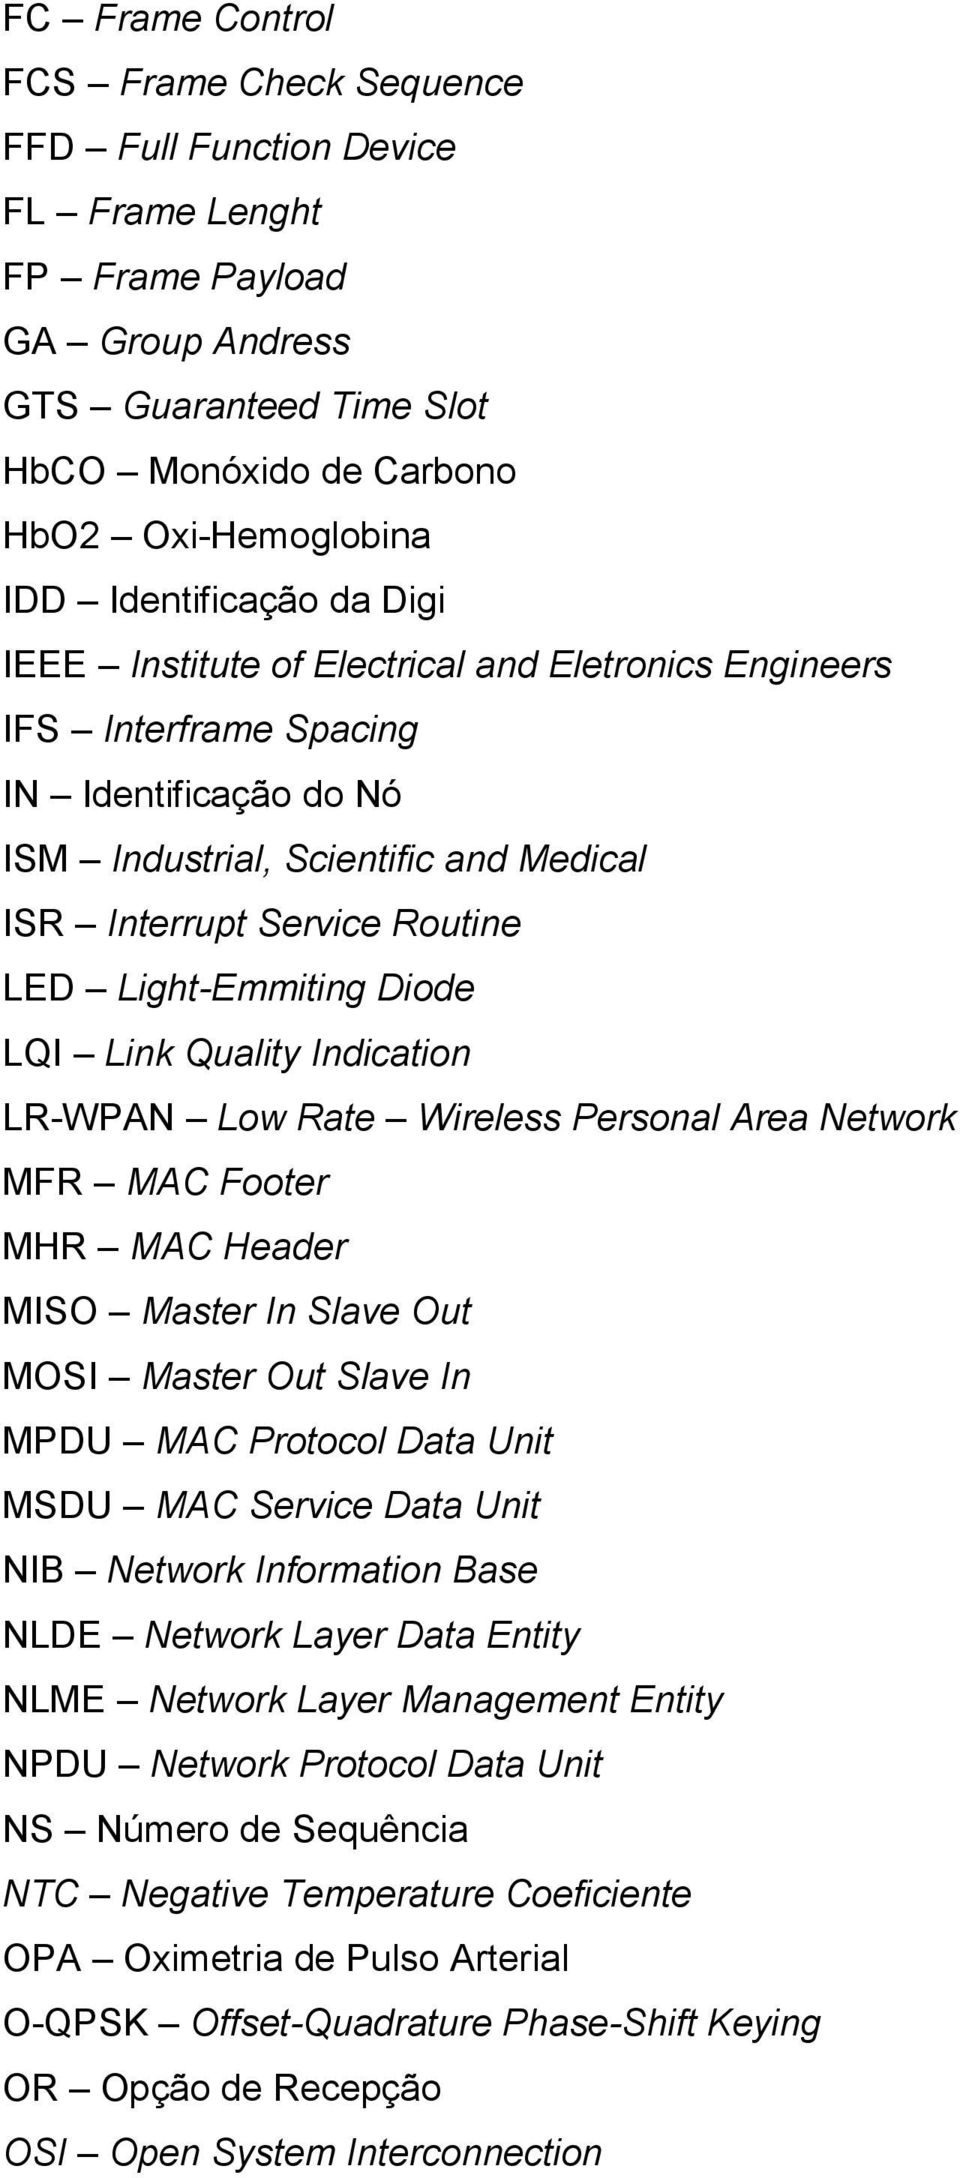 Light-Emmiting Diode LQI Link Quality Indication LR-WPAN Low Rate Wireless Personal Area Network MFR MAC Footer MHR MAC Header MISO Master In Slave Out MOSI Master Out Slave In MPDU MAC Protocol Data